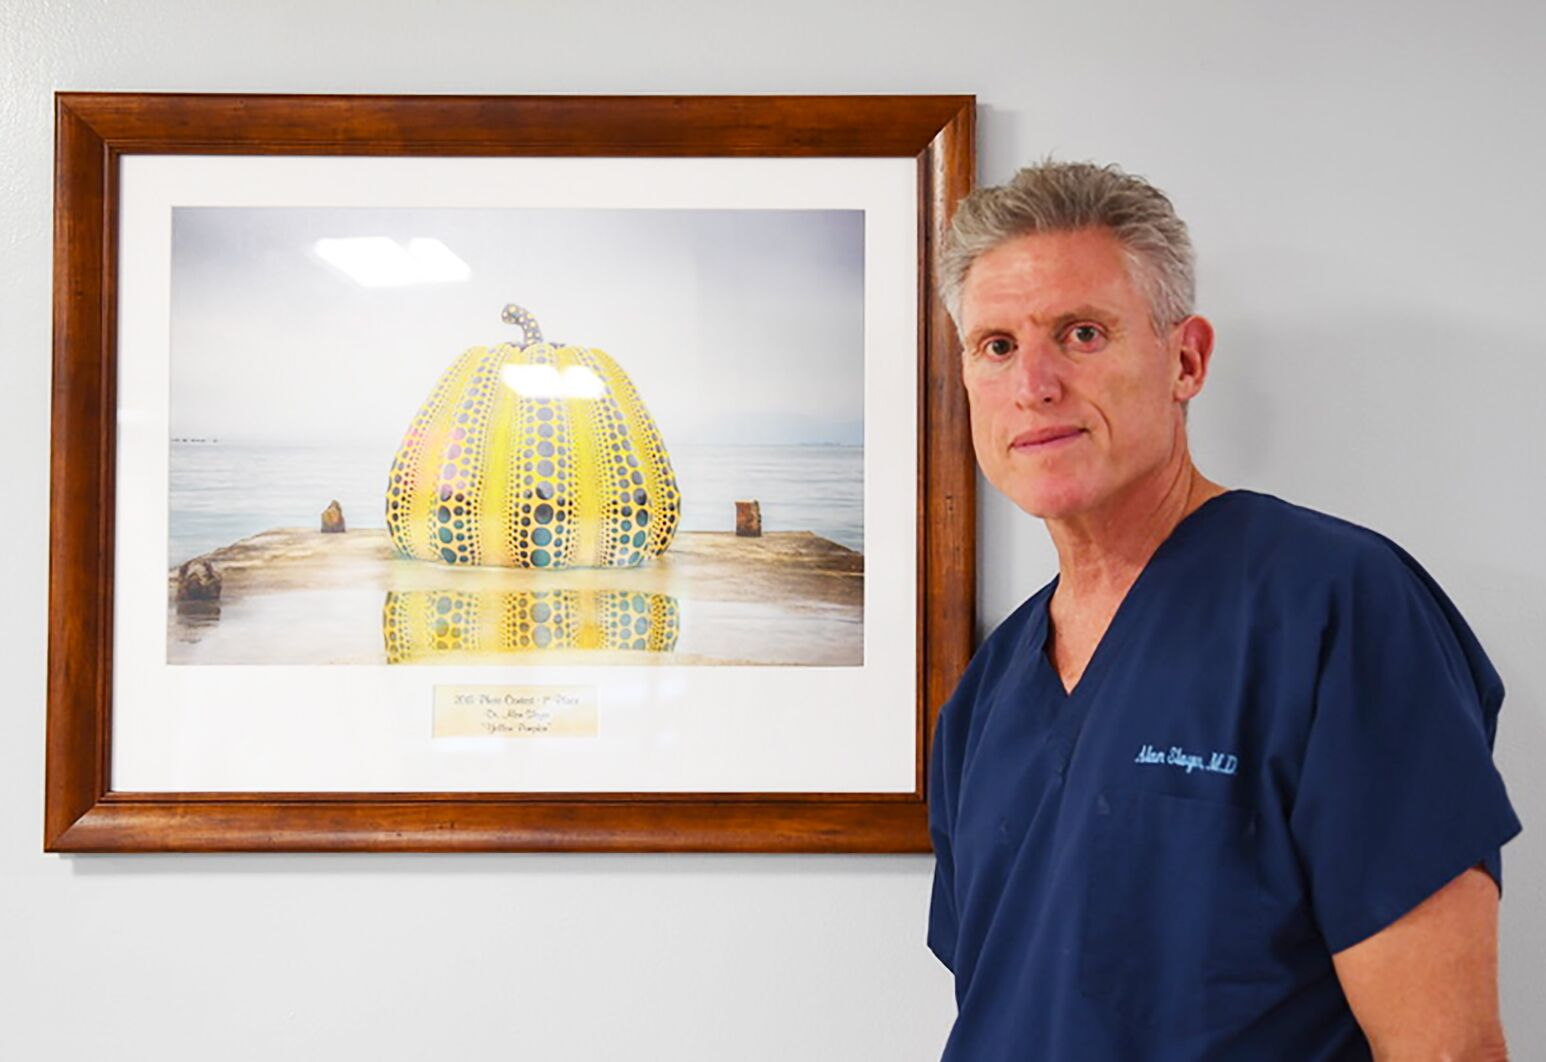 """Dr. Alan Sloyer's won the 2018 Auxiliary of North Shore University Hospital's annual photo contest with his entry """"Yellow Pumpkin."""""""